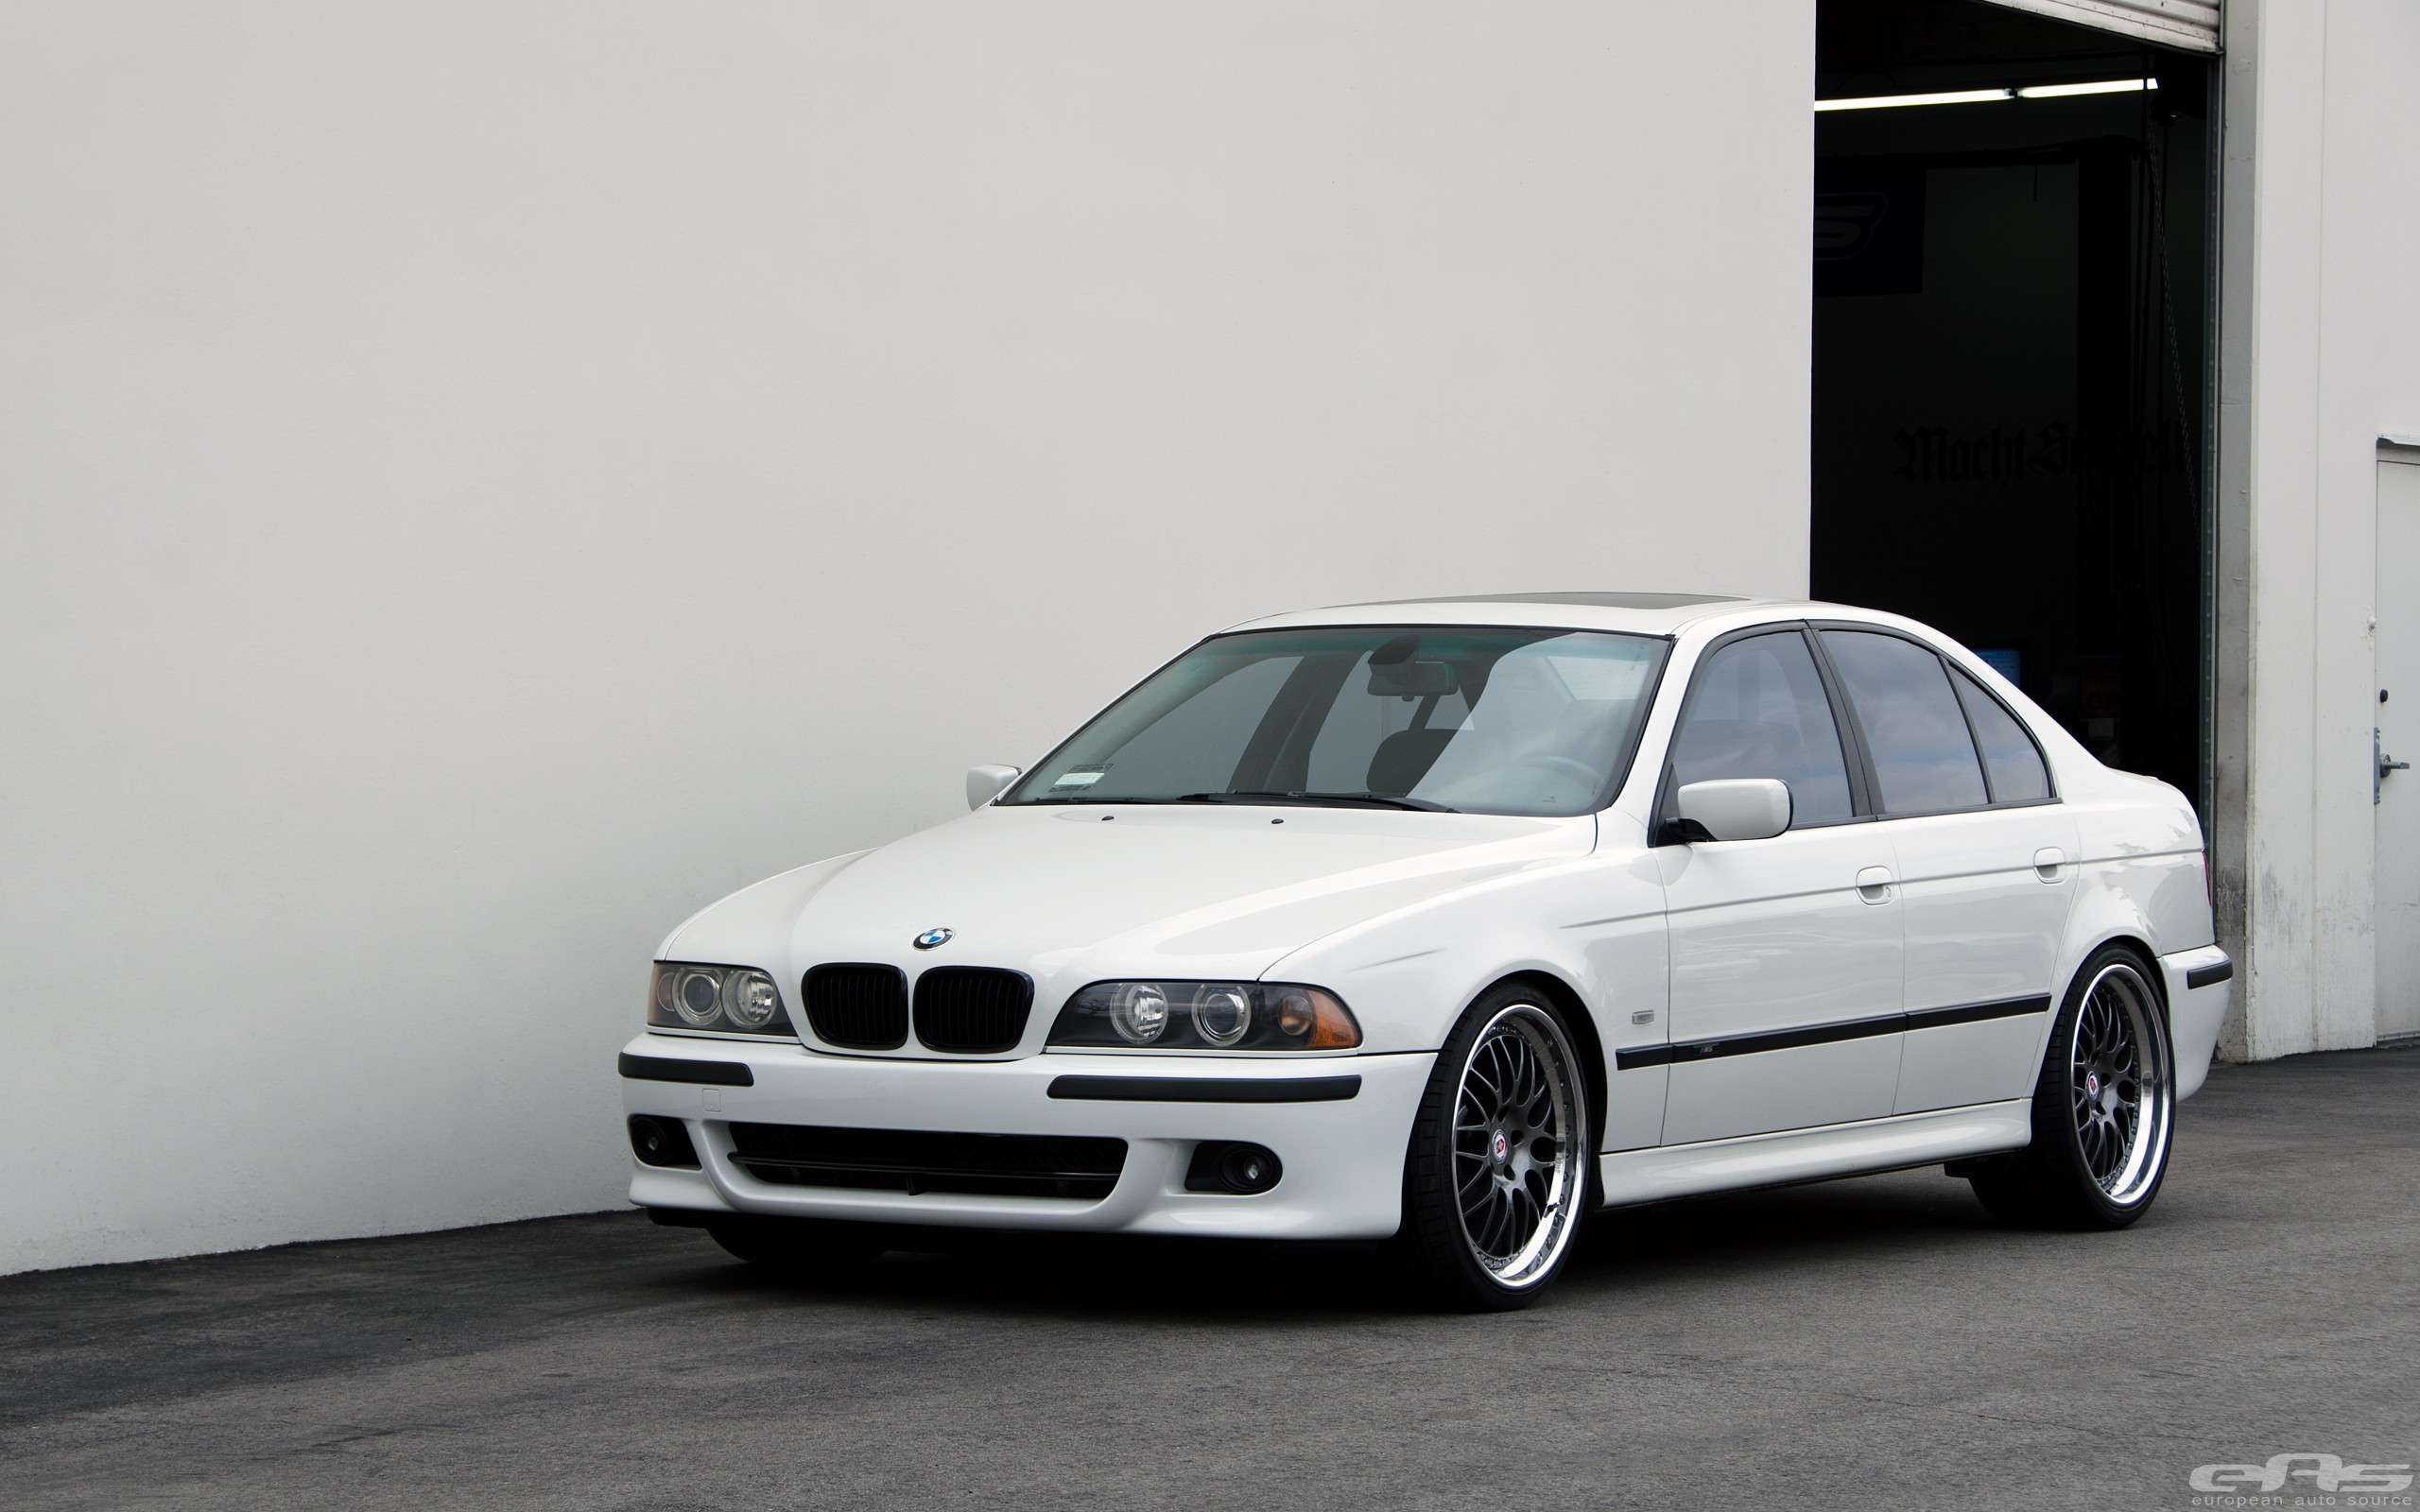 Car Engine Live Wallpaper Bmw E39 530i Gets Lower At Eas Still Looks Good